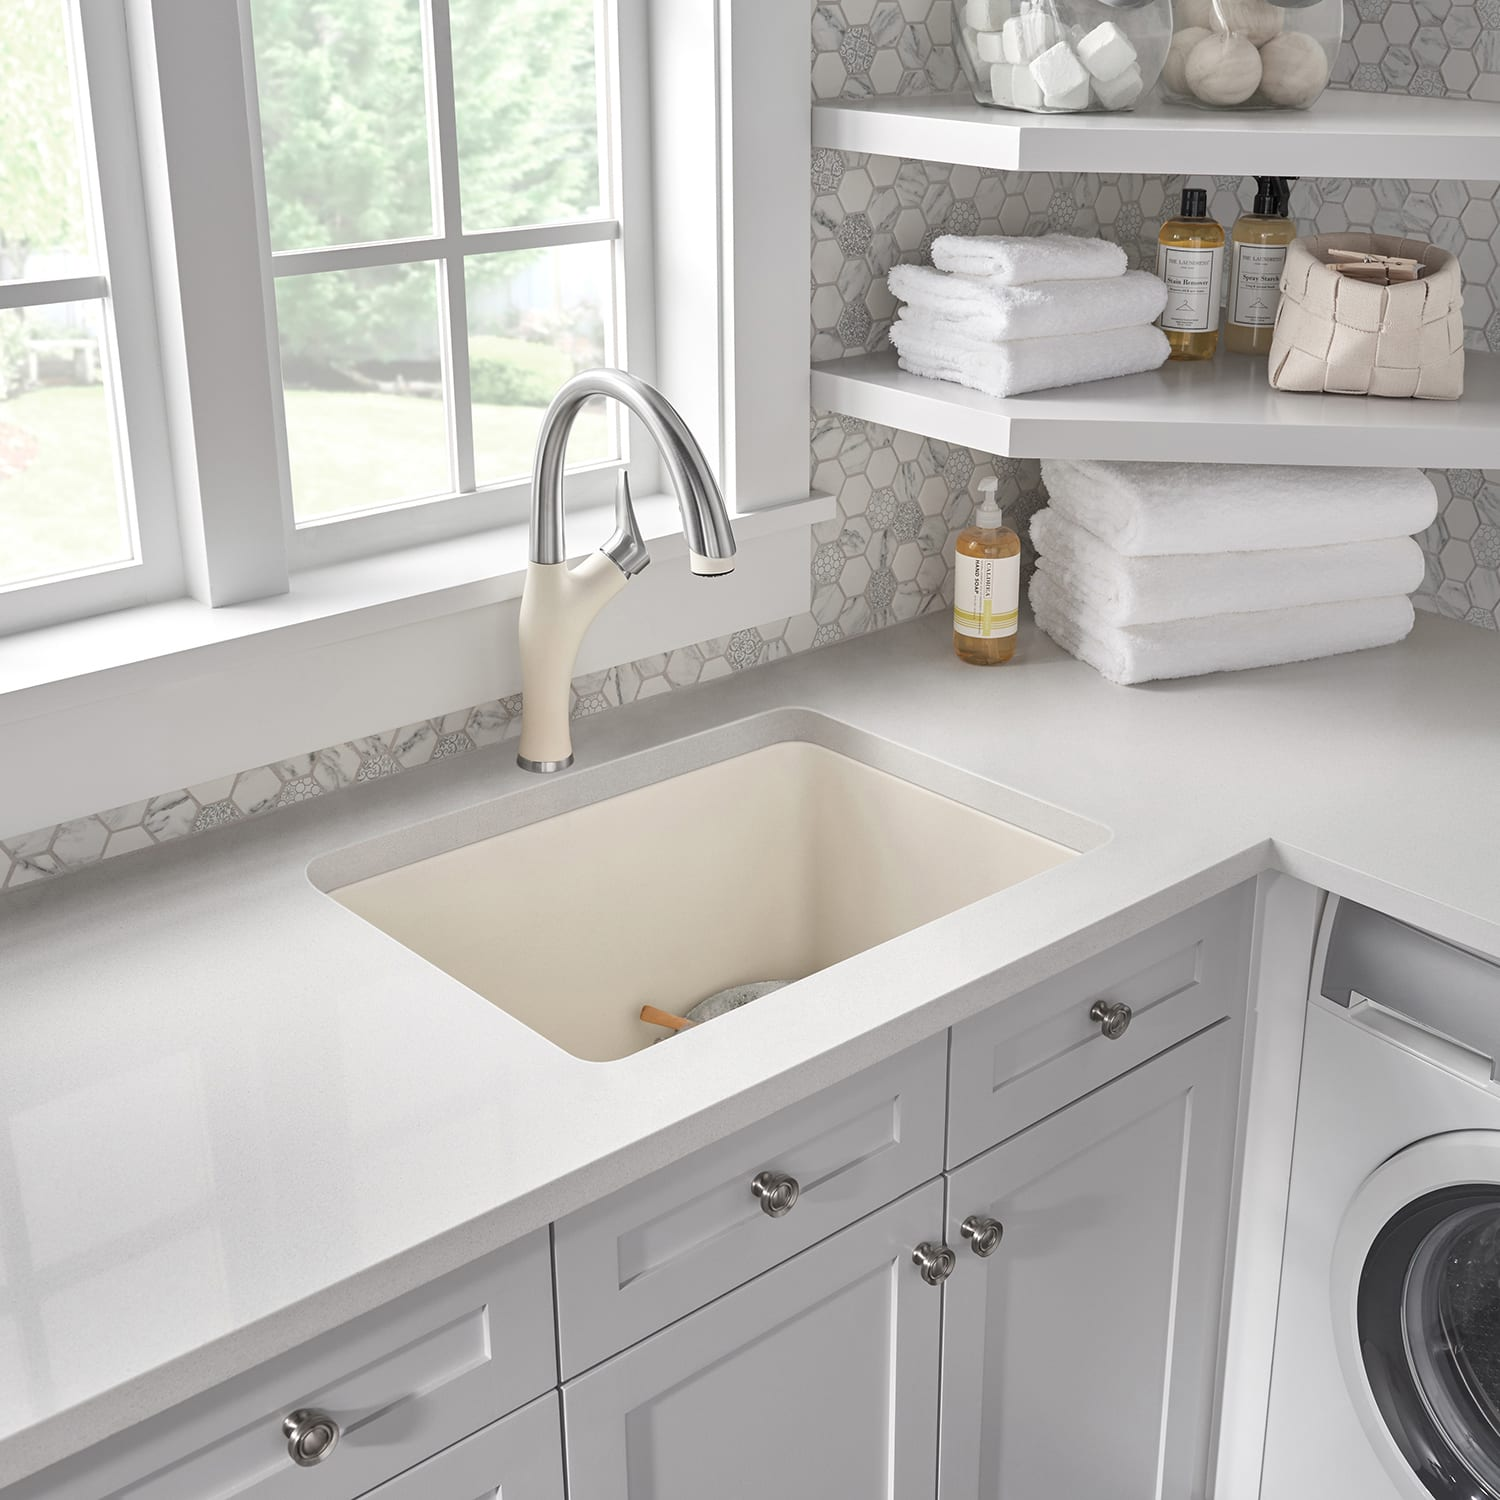 amazing marble countertop sink design and modern faucet.htm blanco 401927 liven 25  laundry sink qualitybath com  blanco 401927 liven 25  laundry sink